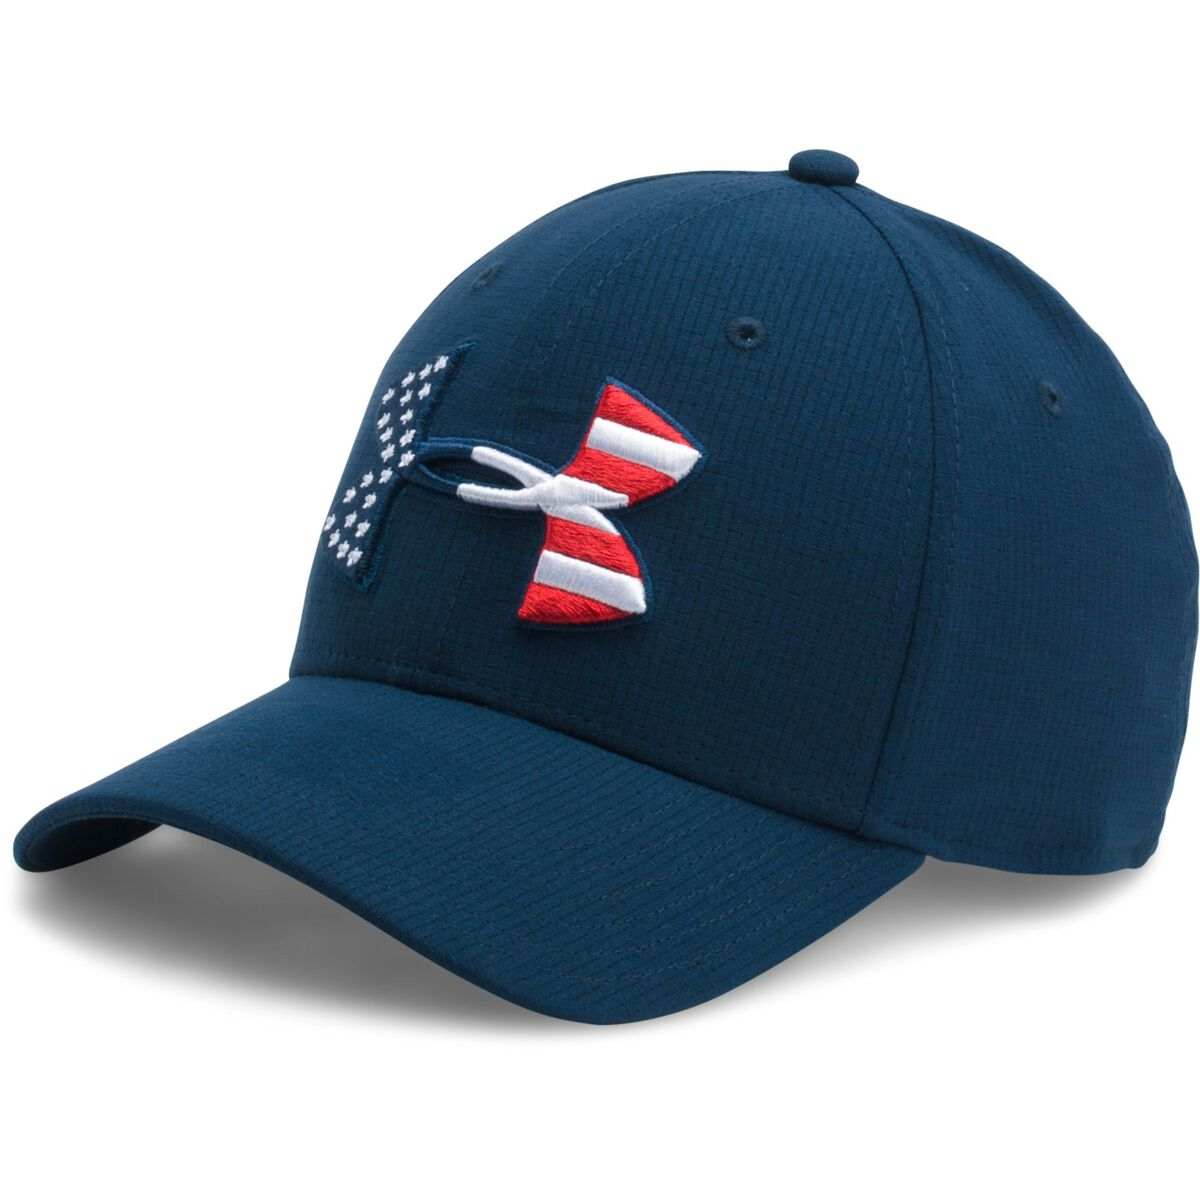 Images. Under Armour Big Flag Logo 2.0 Hat 37cc621da0e